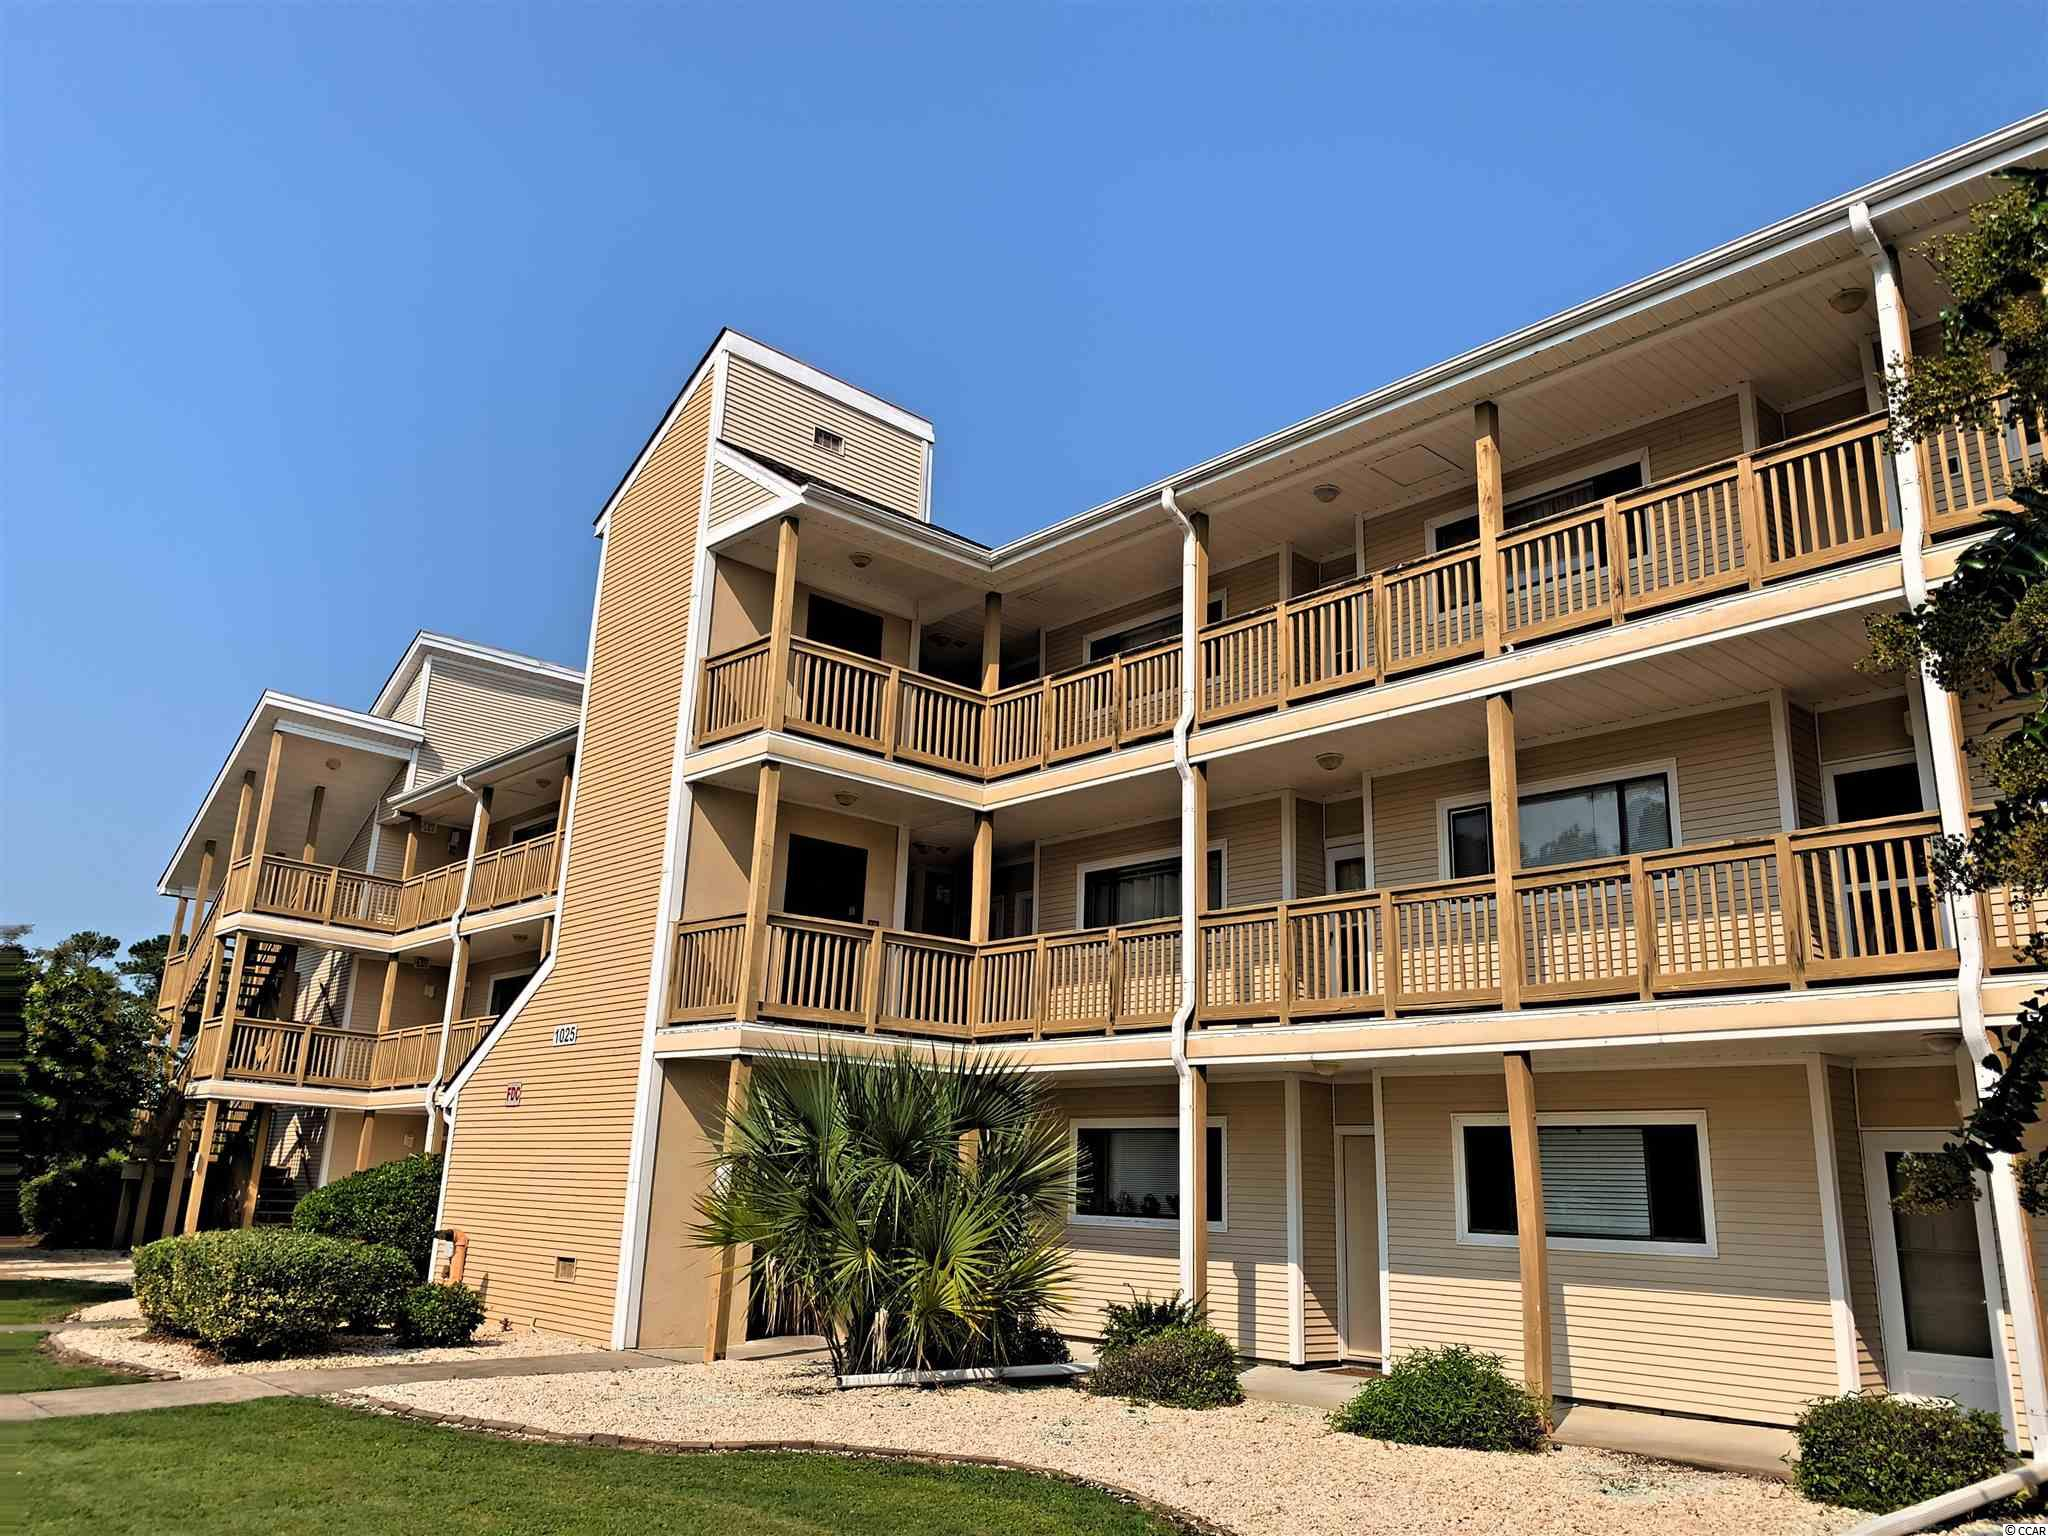 Welcome Home To This Bd/1Ba Jewel That Is Just 2 1/2 Miles Away From The Majestic Atlantic Ocean! This Condo Is Located In A Great Location And Close To Everything.* HAS ELEVATOR, WASHER and DRYER & POOL ONLY KNOWN UNIT IN BUILDING TO HAVE WASHER & DRYER. ONLY THE 3RD FLOOR HAS THE EXTRA WINDOWS ABOVE THE SLIDERS, CATHEDRAL CEILINGS AND VERY LOW HOA FEES*  The Property Is Bright And Airy With Lots Of Glass And Many  Upgrades And Renovations Have Been Done To This Property. The Carpets Have Been Removed And Replaced With 34 Inch Plywood And Laminate Click Floors, Bathroom Floors Have Been Installed With And Subfloor Replaced, Bathroom Vanity And Toilet Installed,  Kitchen Cabinets And Counter Top Installed, Backsplash Installed, Wiring And Drain System Professionally Installed For Hook Up Of Washer/Dryer In Kitchen Pantry, Sheet Rock In Entrance Way Hallway Removing Ceiling Tiles And Appliances Have Been Replaced. Bay tree Golf & Racquet Has A Large Community Pool And Pool Deck. Close To Shopping, Restaurants, Grocery Stores, And Right Across From The Hospital. Come See This Quaint Condo In Little River; Home Of The Blue Crab Festival!